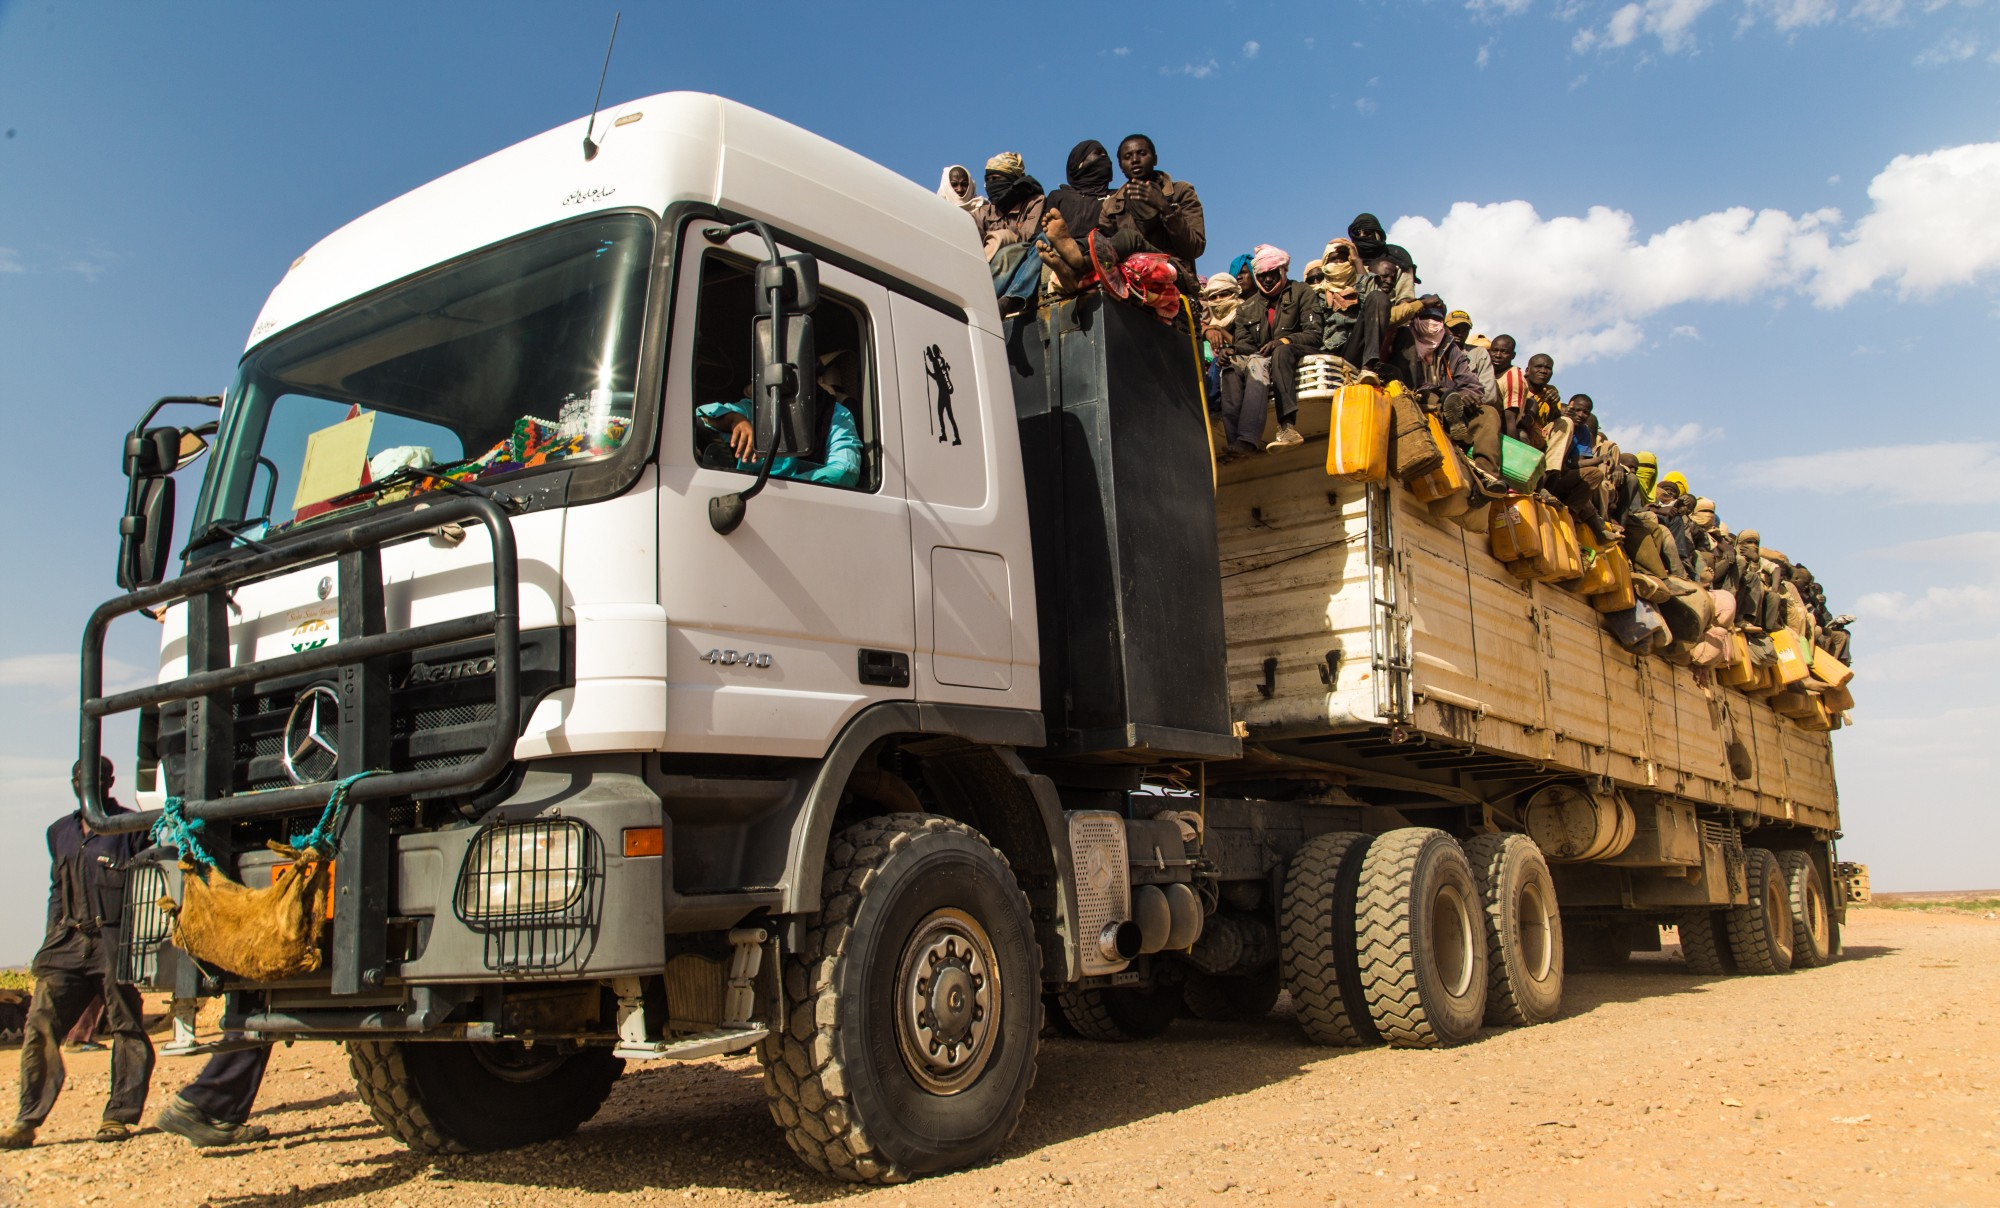 Packed into a lorry, searching for a better life. Photo Credit: ICRC